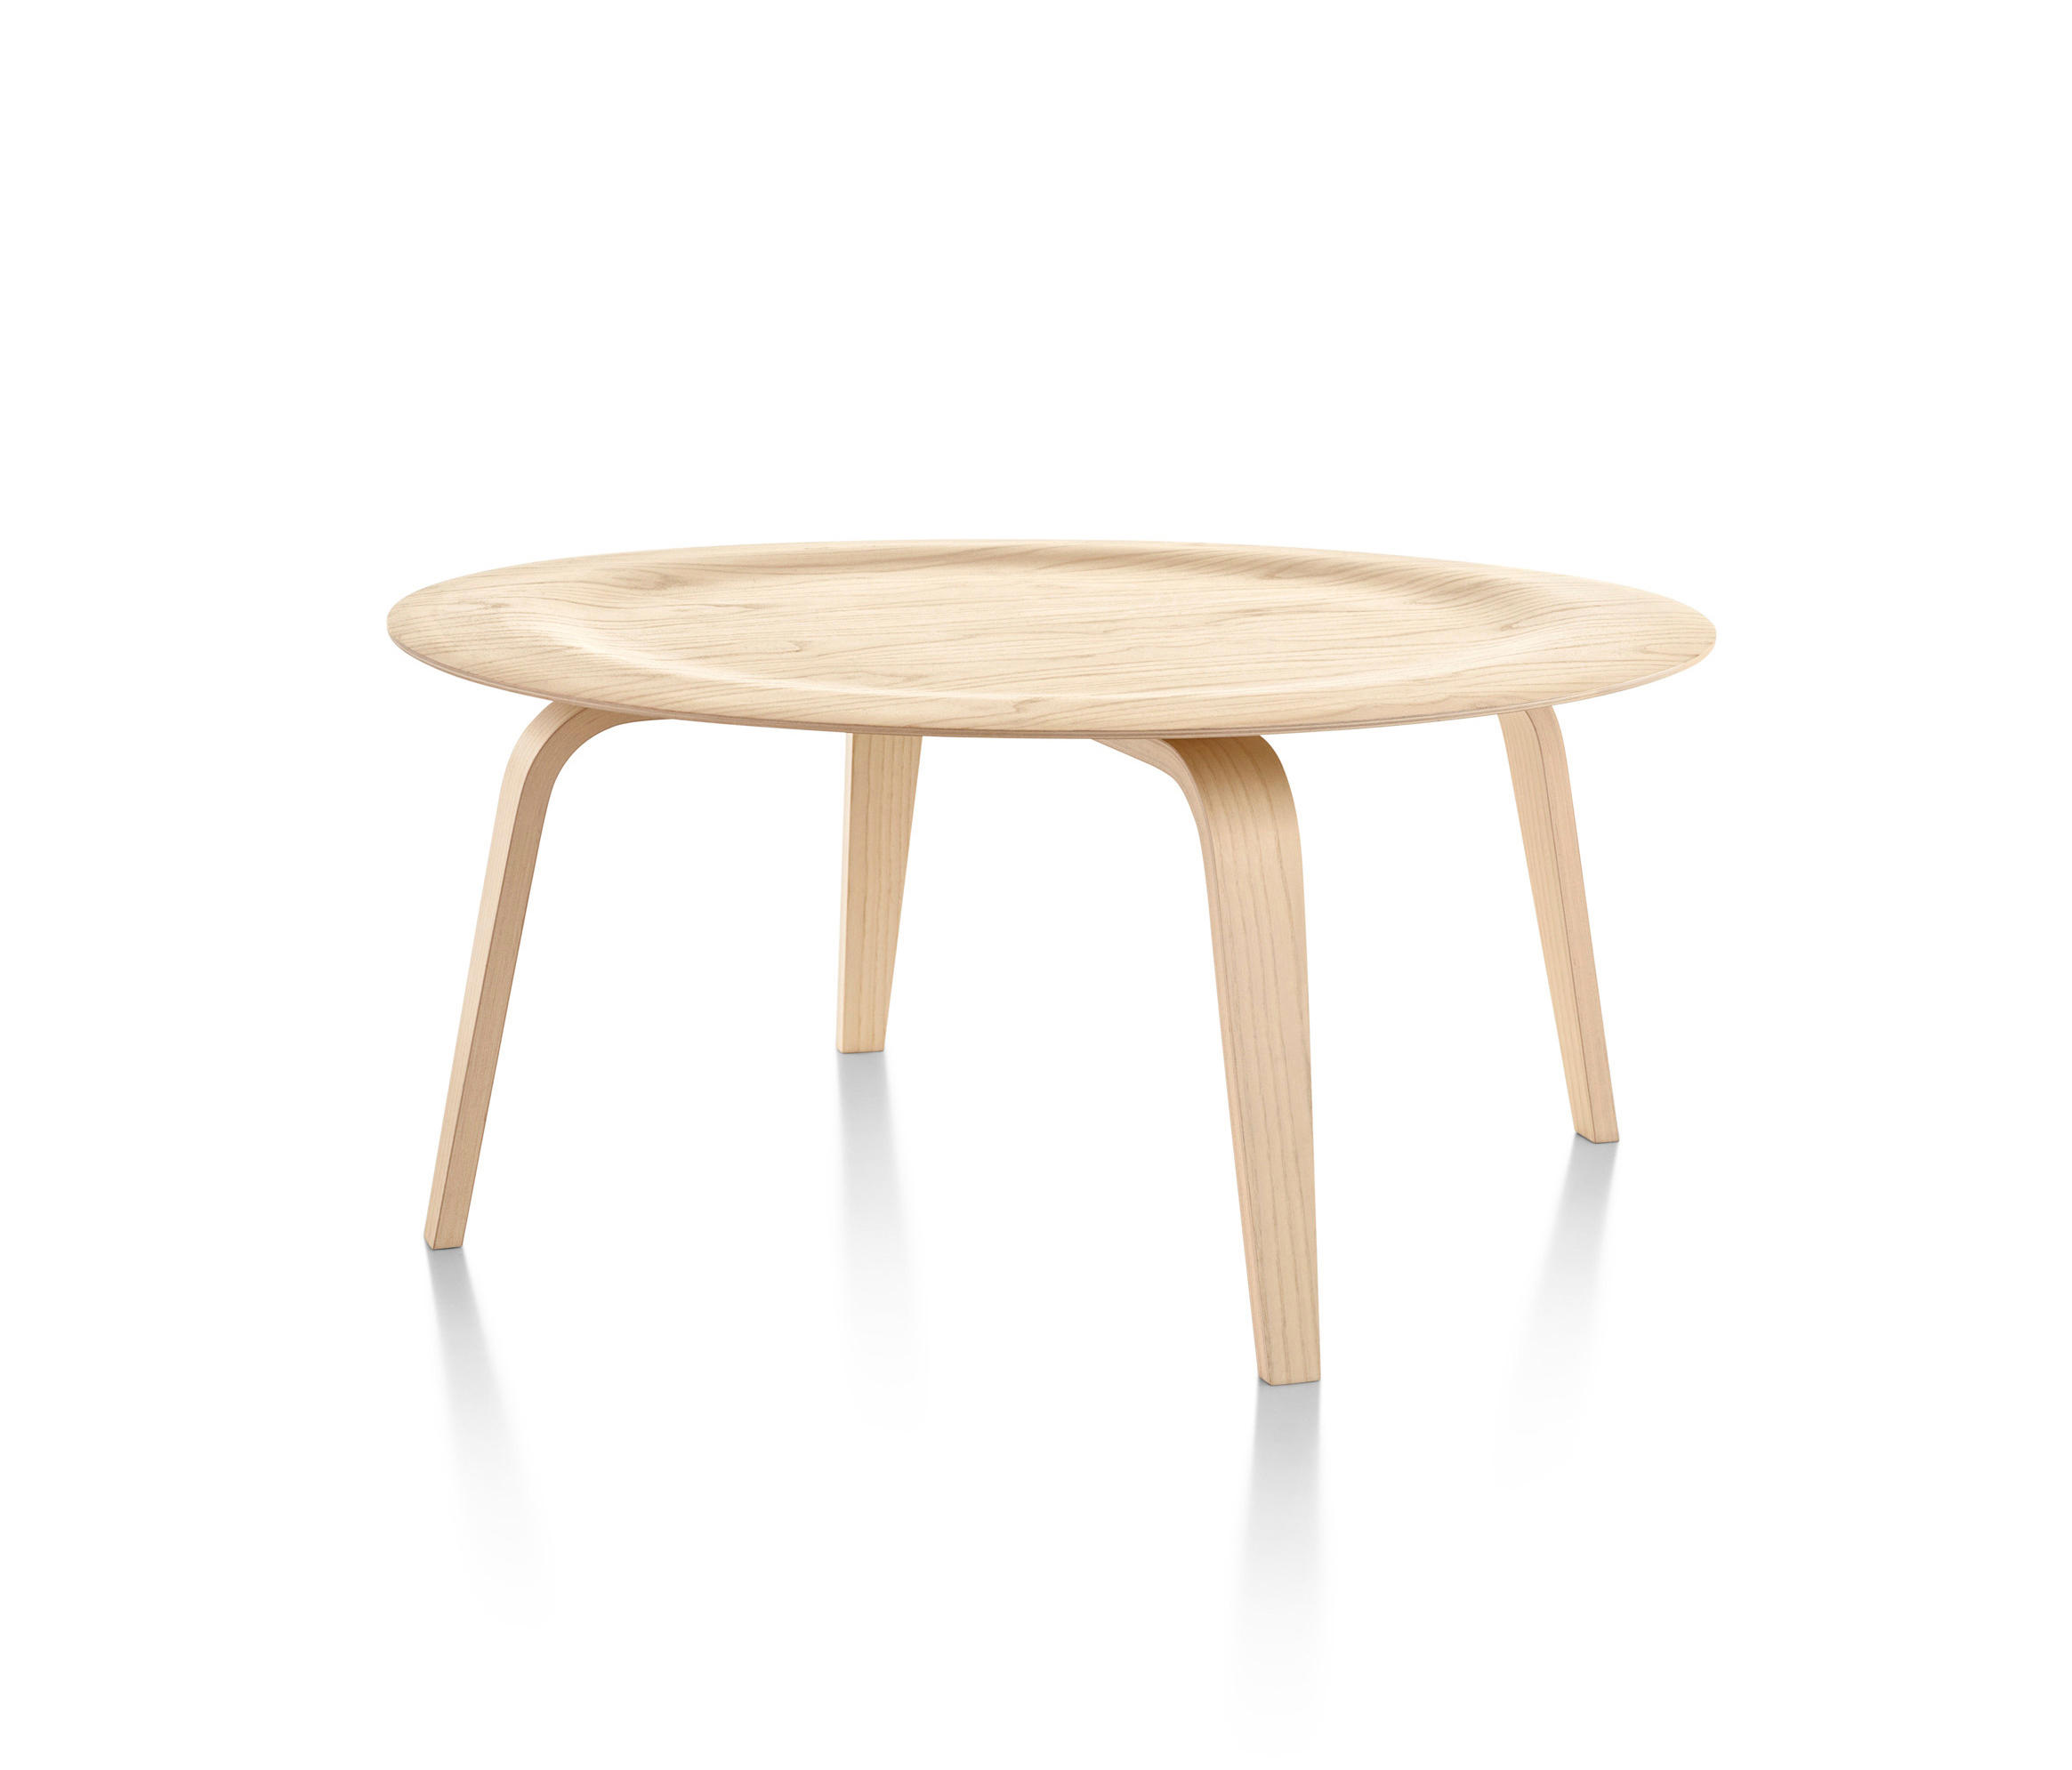 Genial Eames Molded Plywood Coffee Table Wood Base By Herman Miller | Lounge Tables